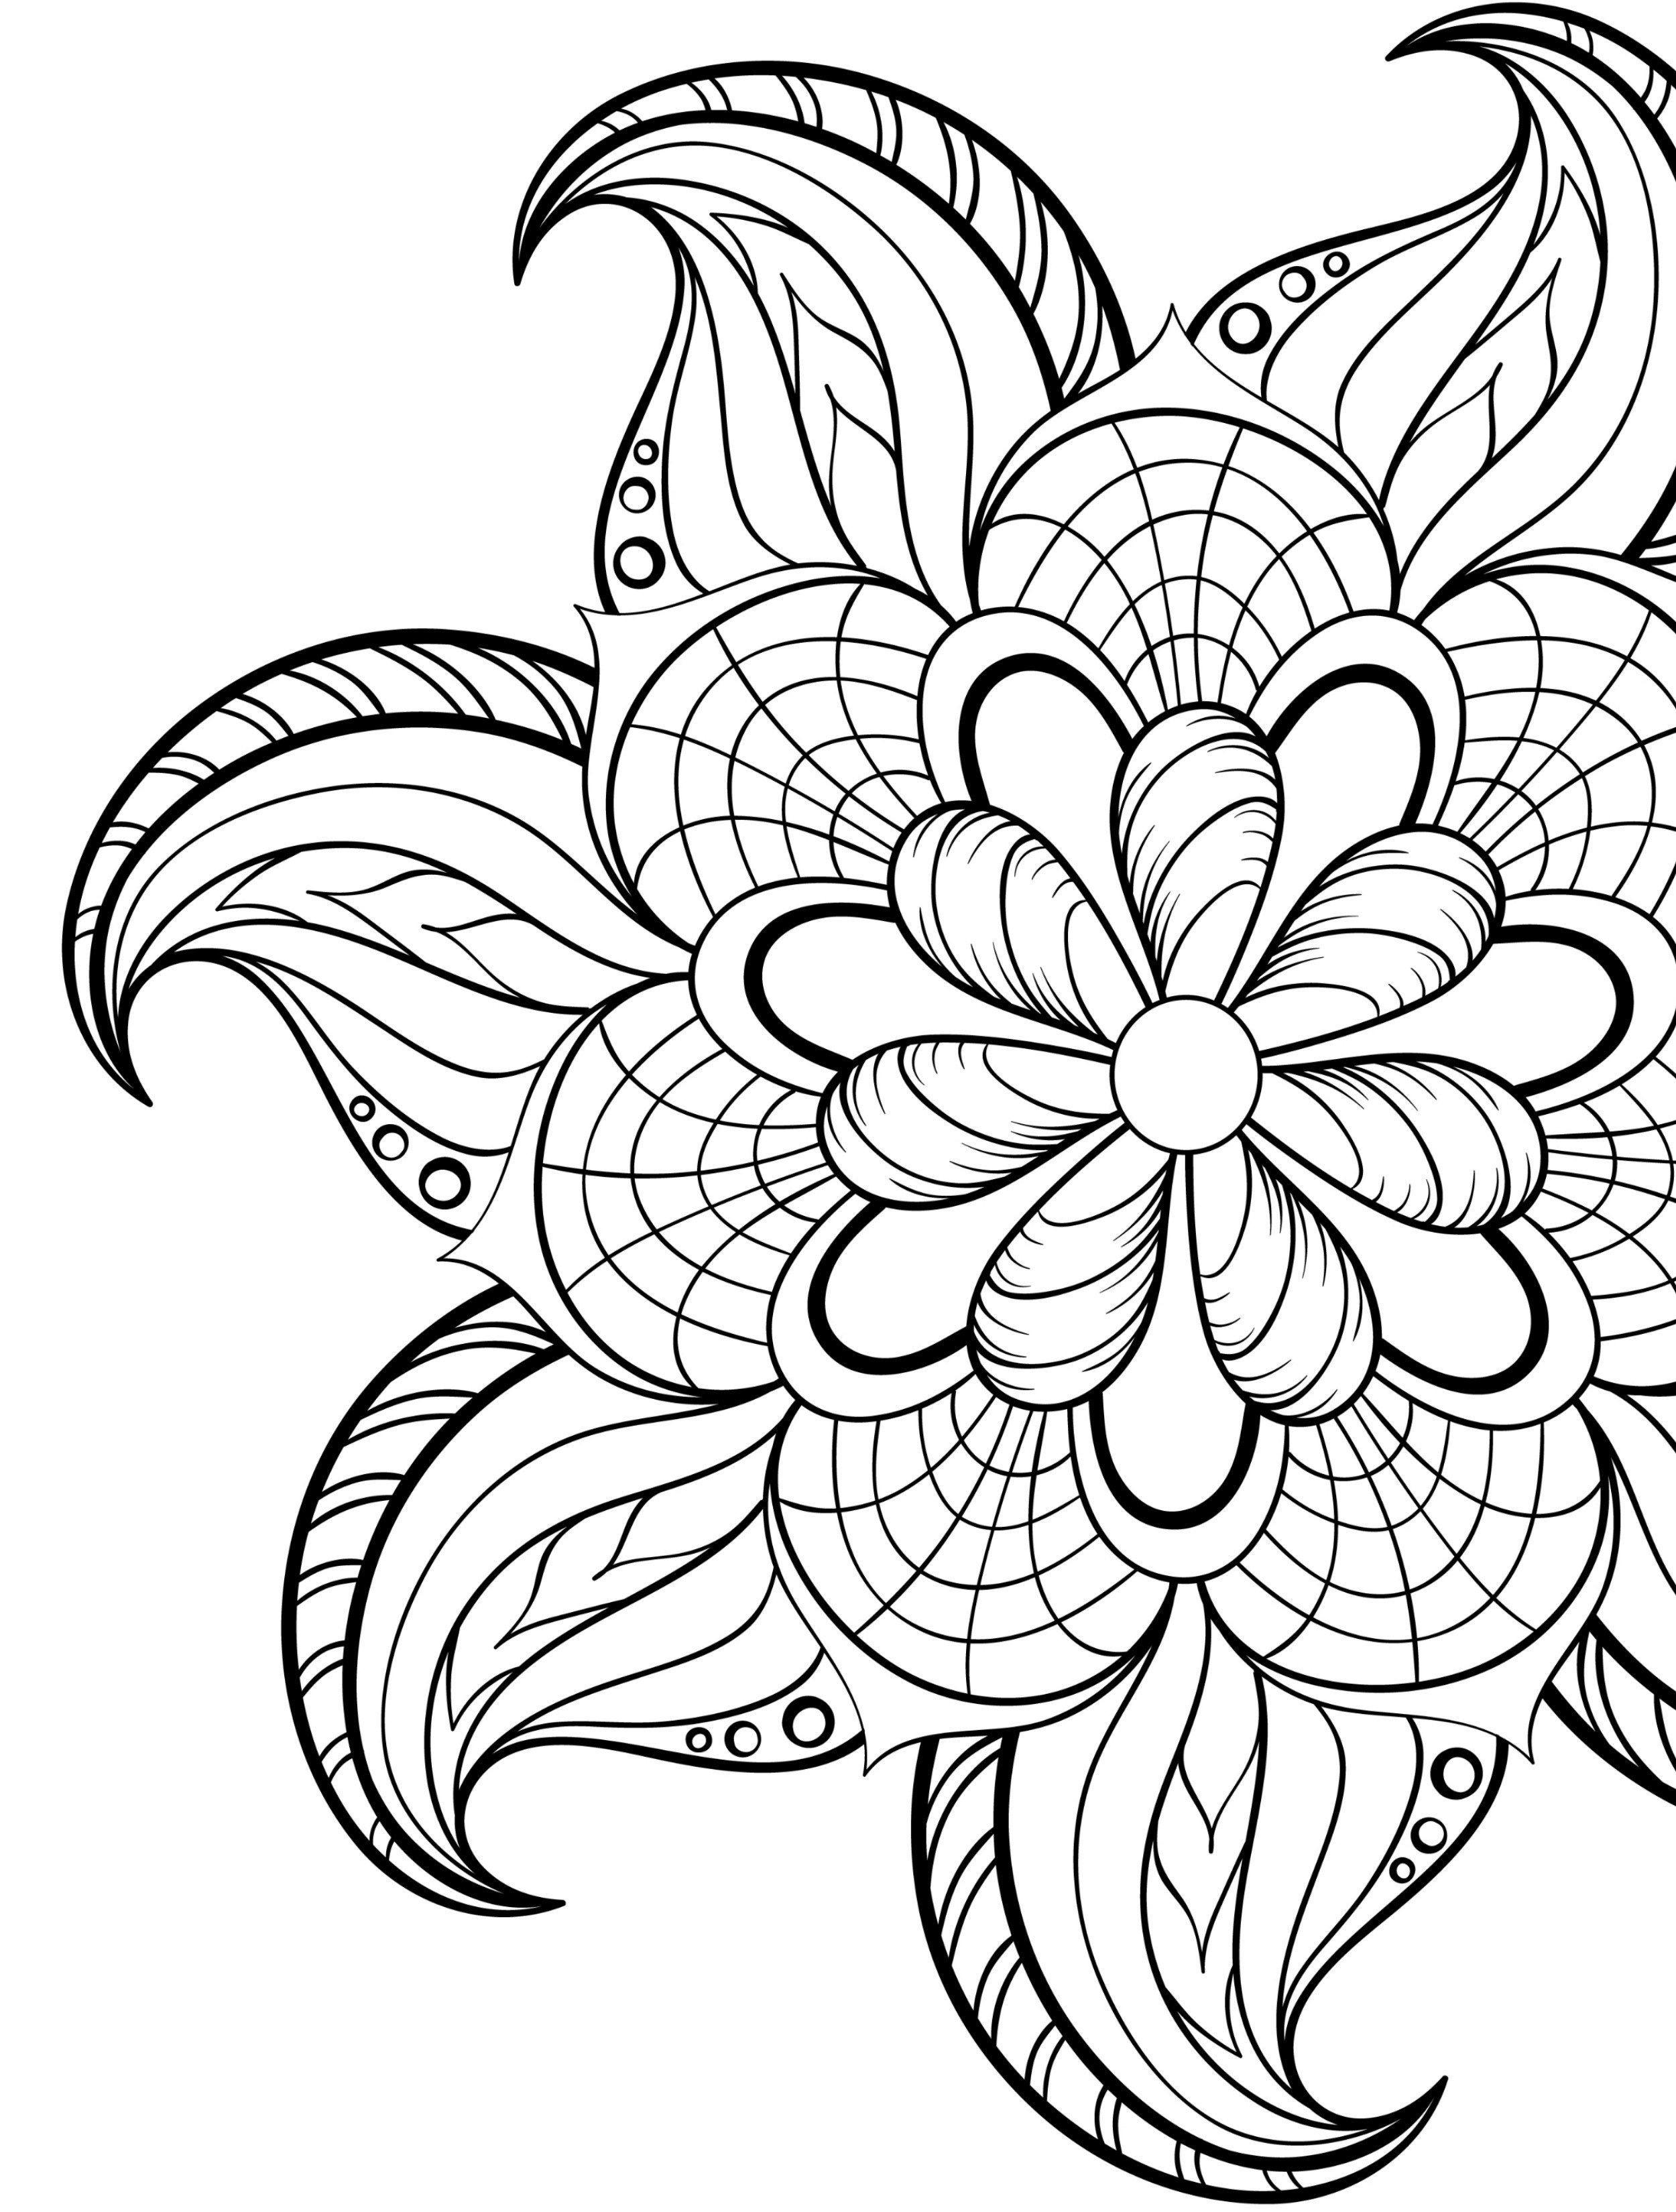 Stifte Zum Ausmalen 20 Gorgeous Free Printable Adult Coloring Pages Adult Coloring